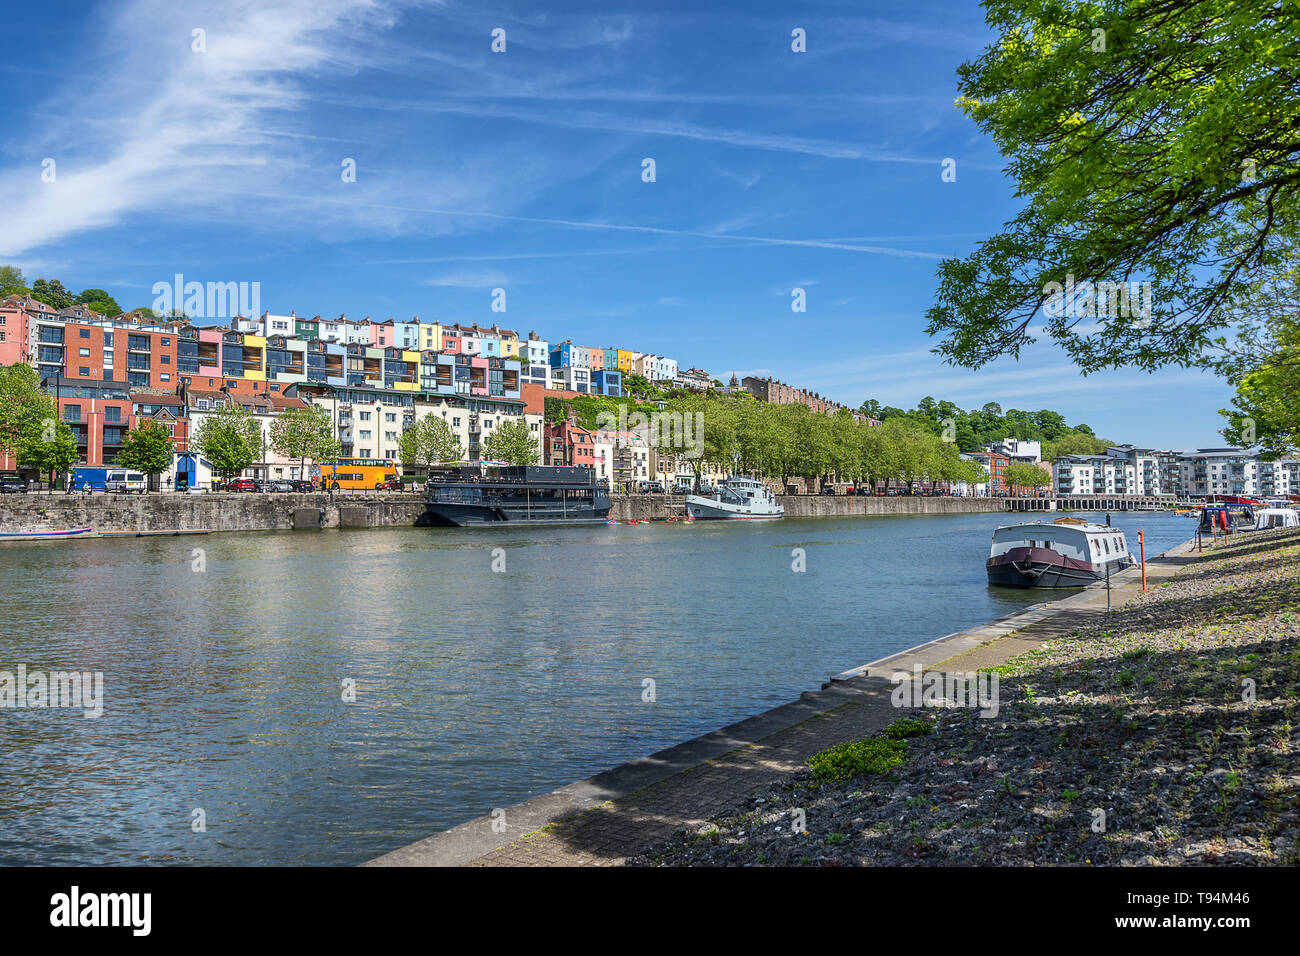 Harbourside on the floating harbour in Bristol - Stock Image